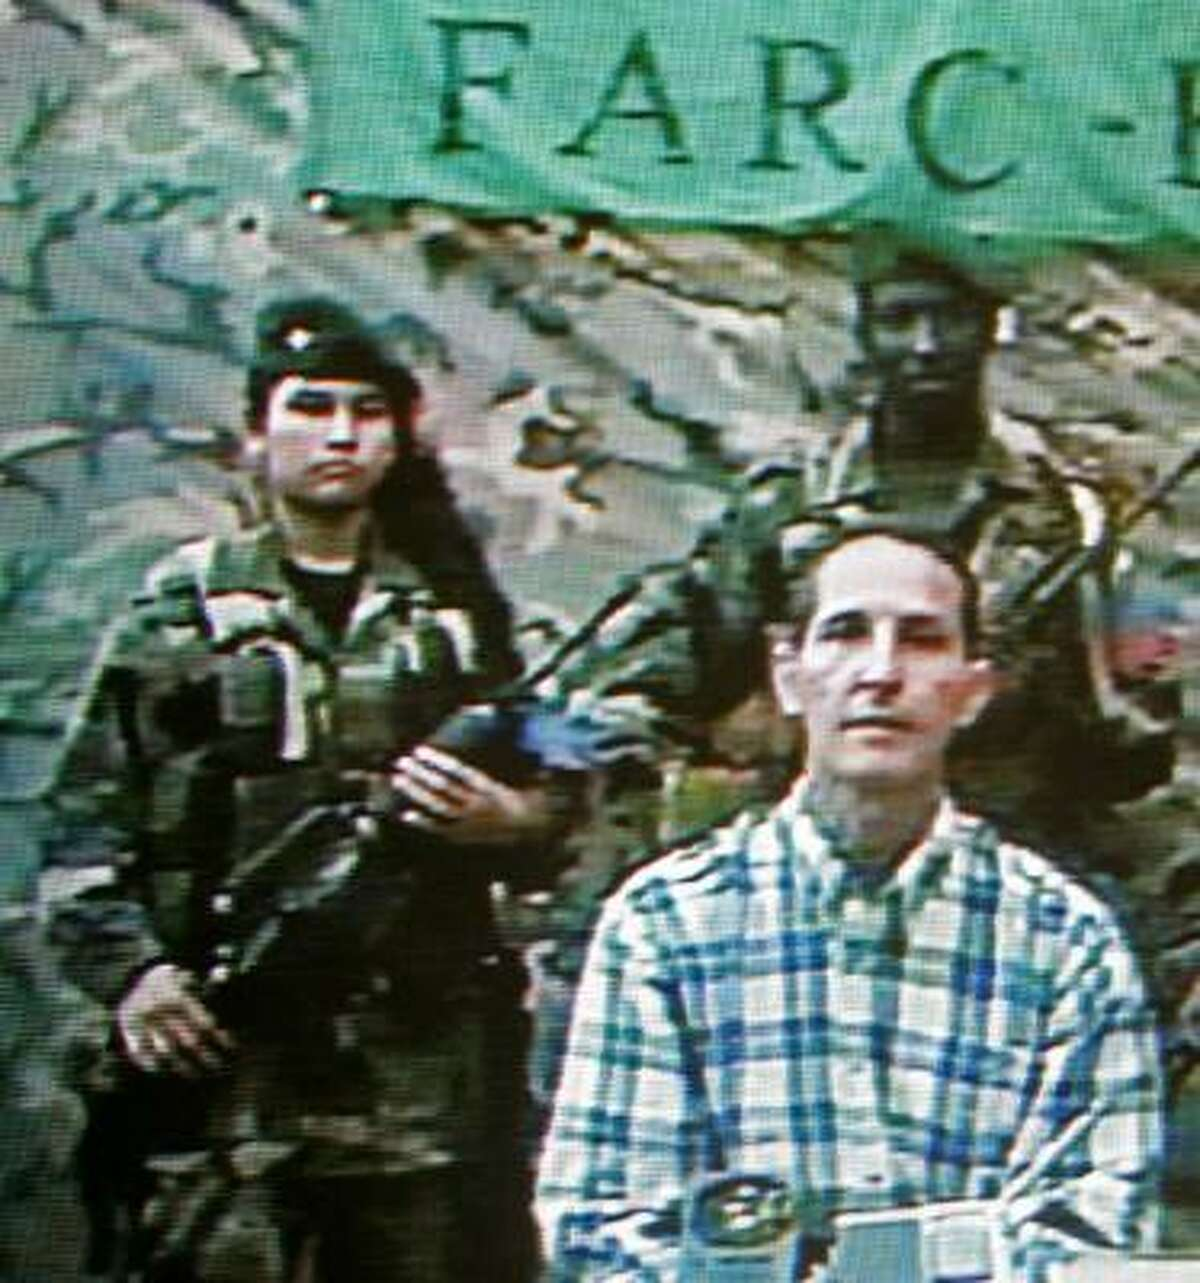 Rebels held Fernando Araujo for six years before he escaped during a government raid.